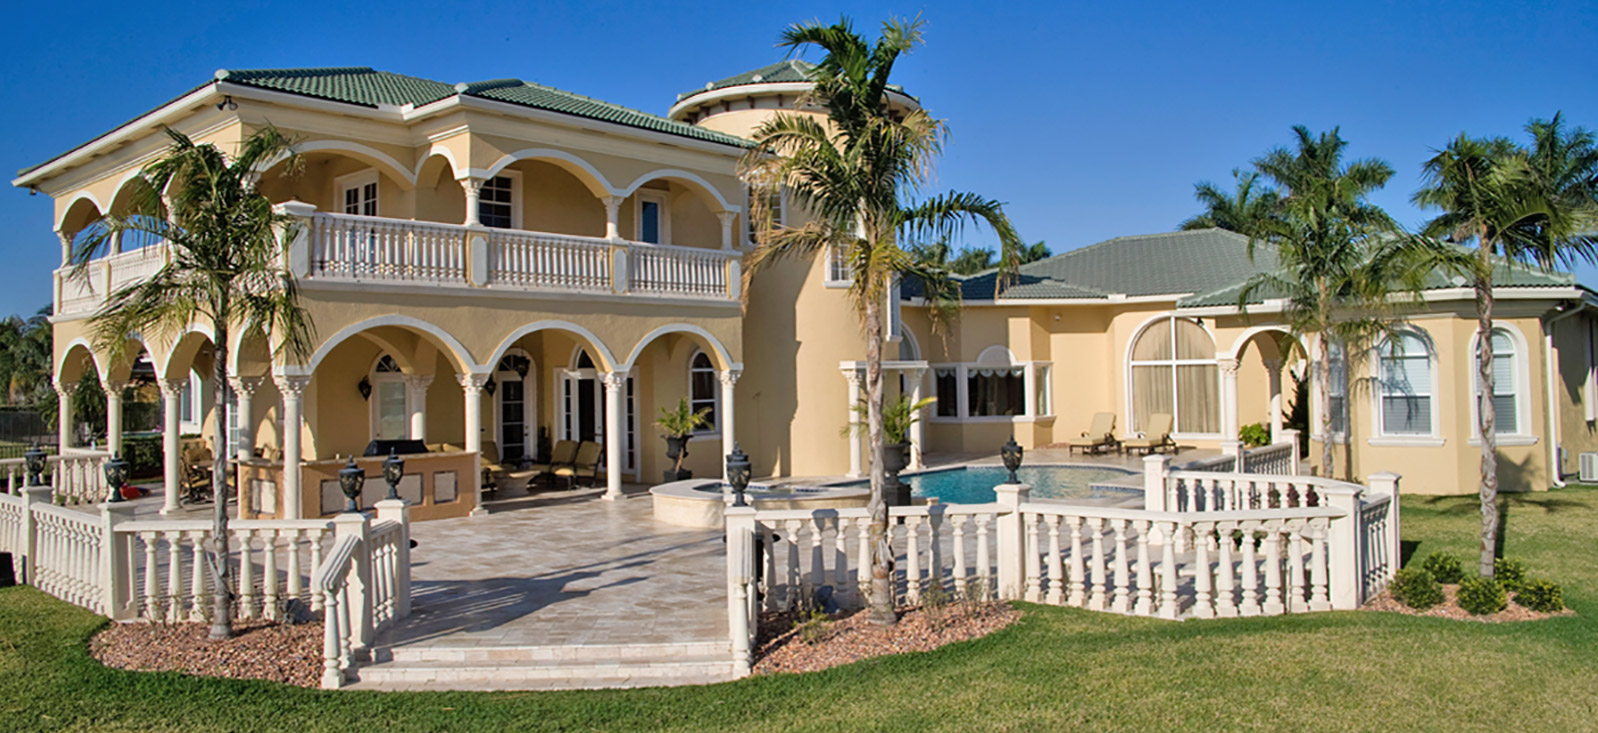 davie florida architect photo